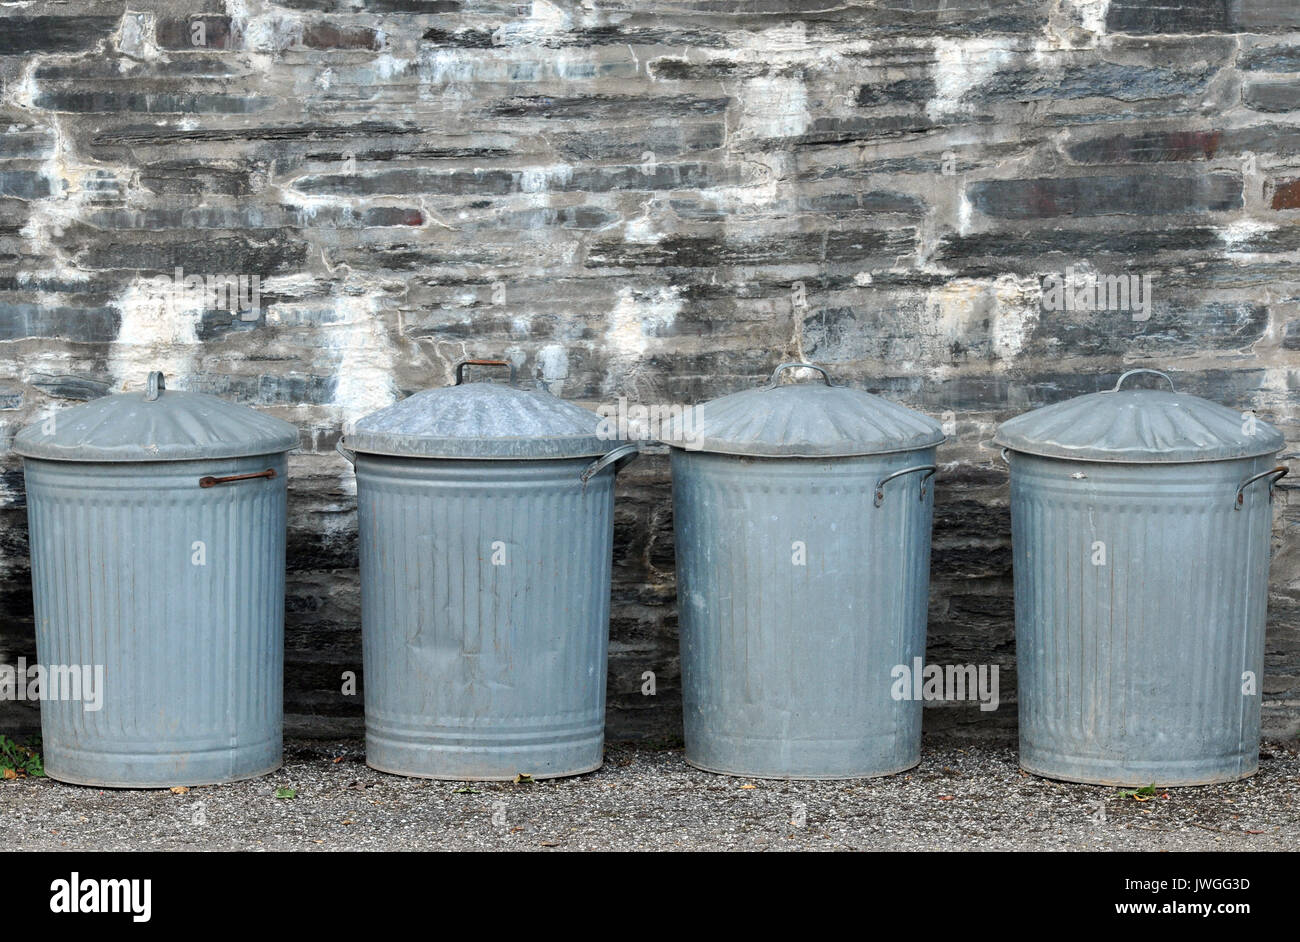 Dustbins Stock Photos & Dustbins Stock Images - Alamy